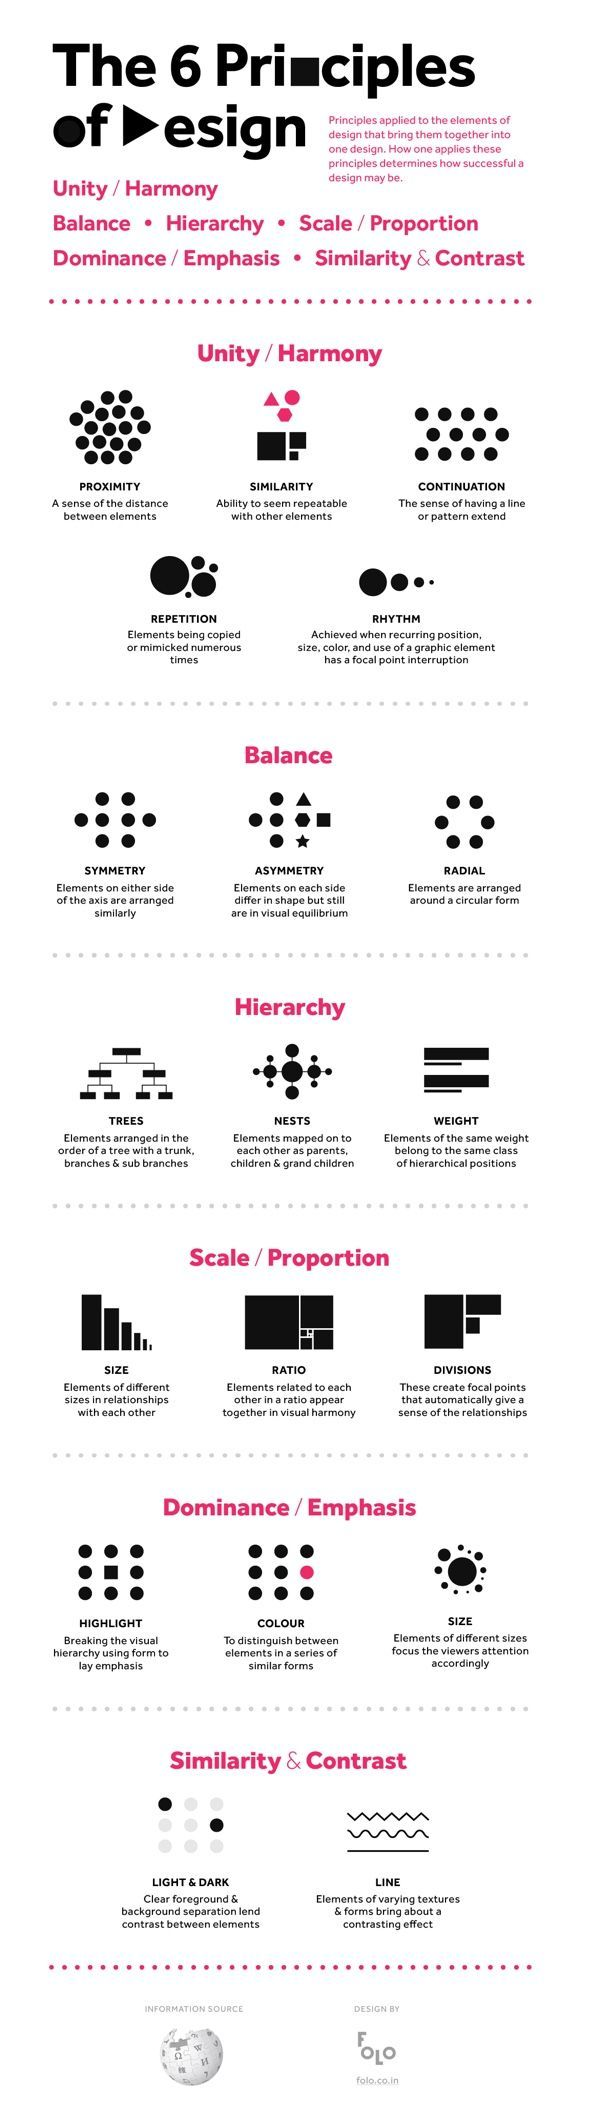 The 6 Principles of #Design - Unity, balance, scale, hierarchy, contrast and emphasis #infographic